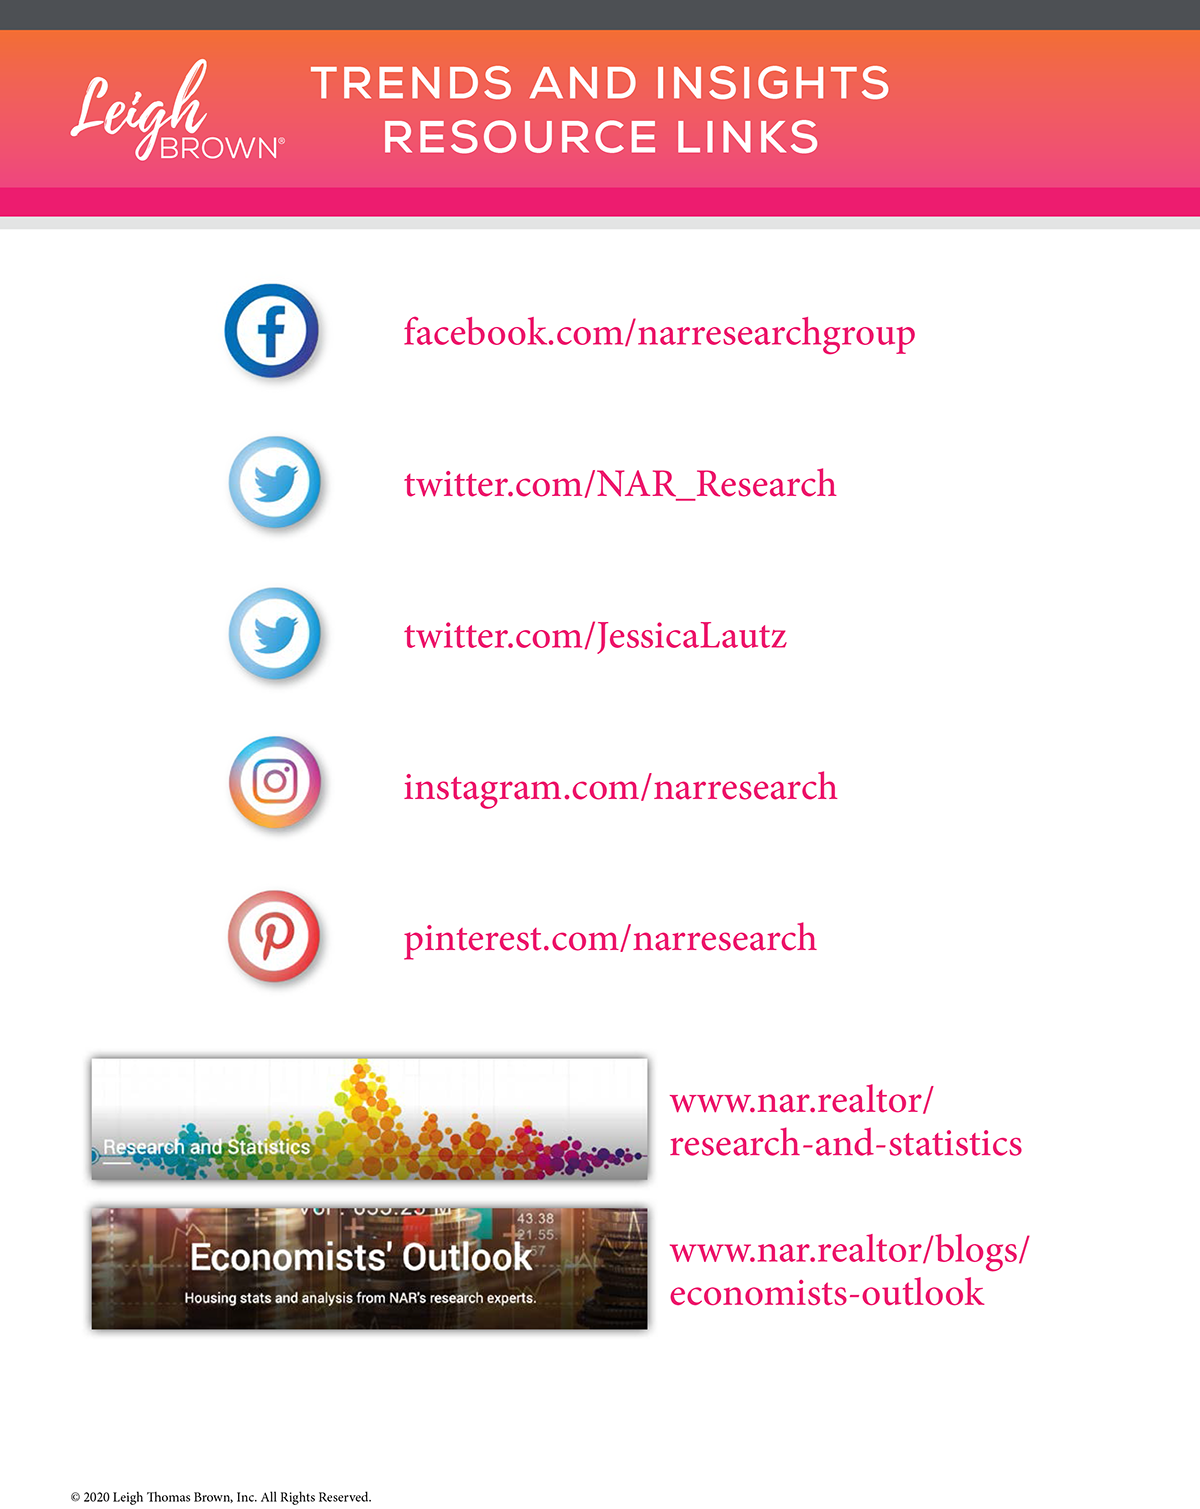 2021 Trends and Insights Resource Links